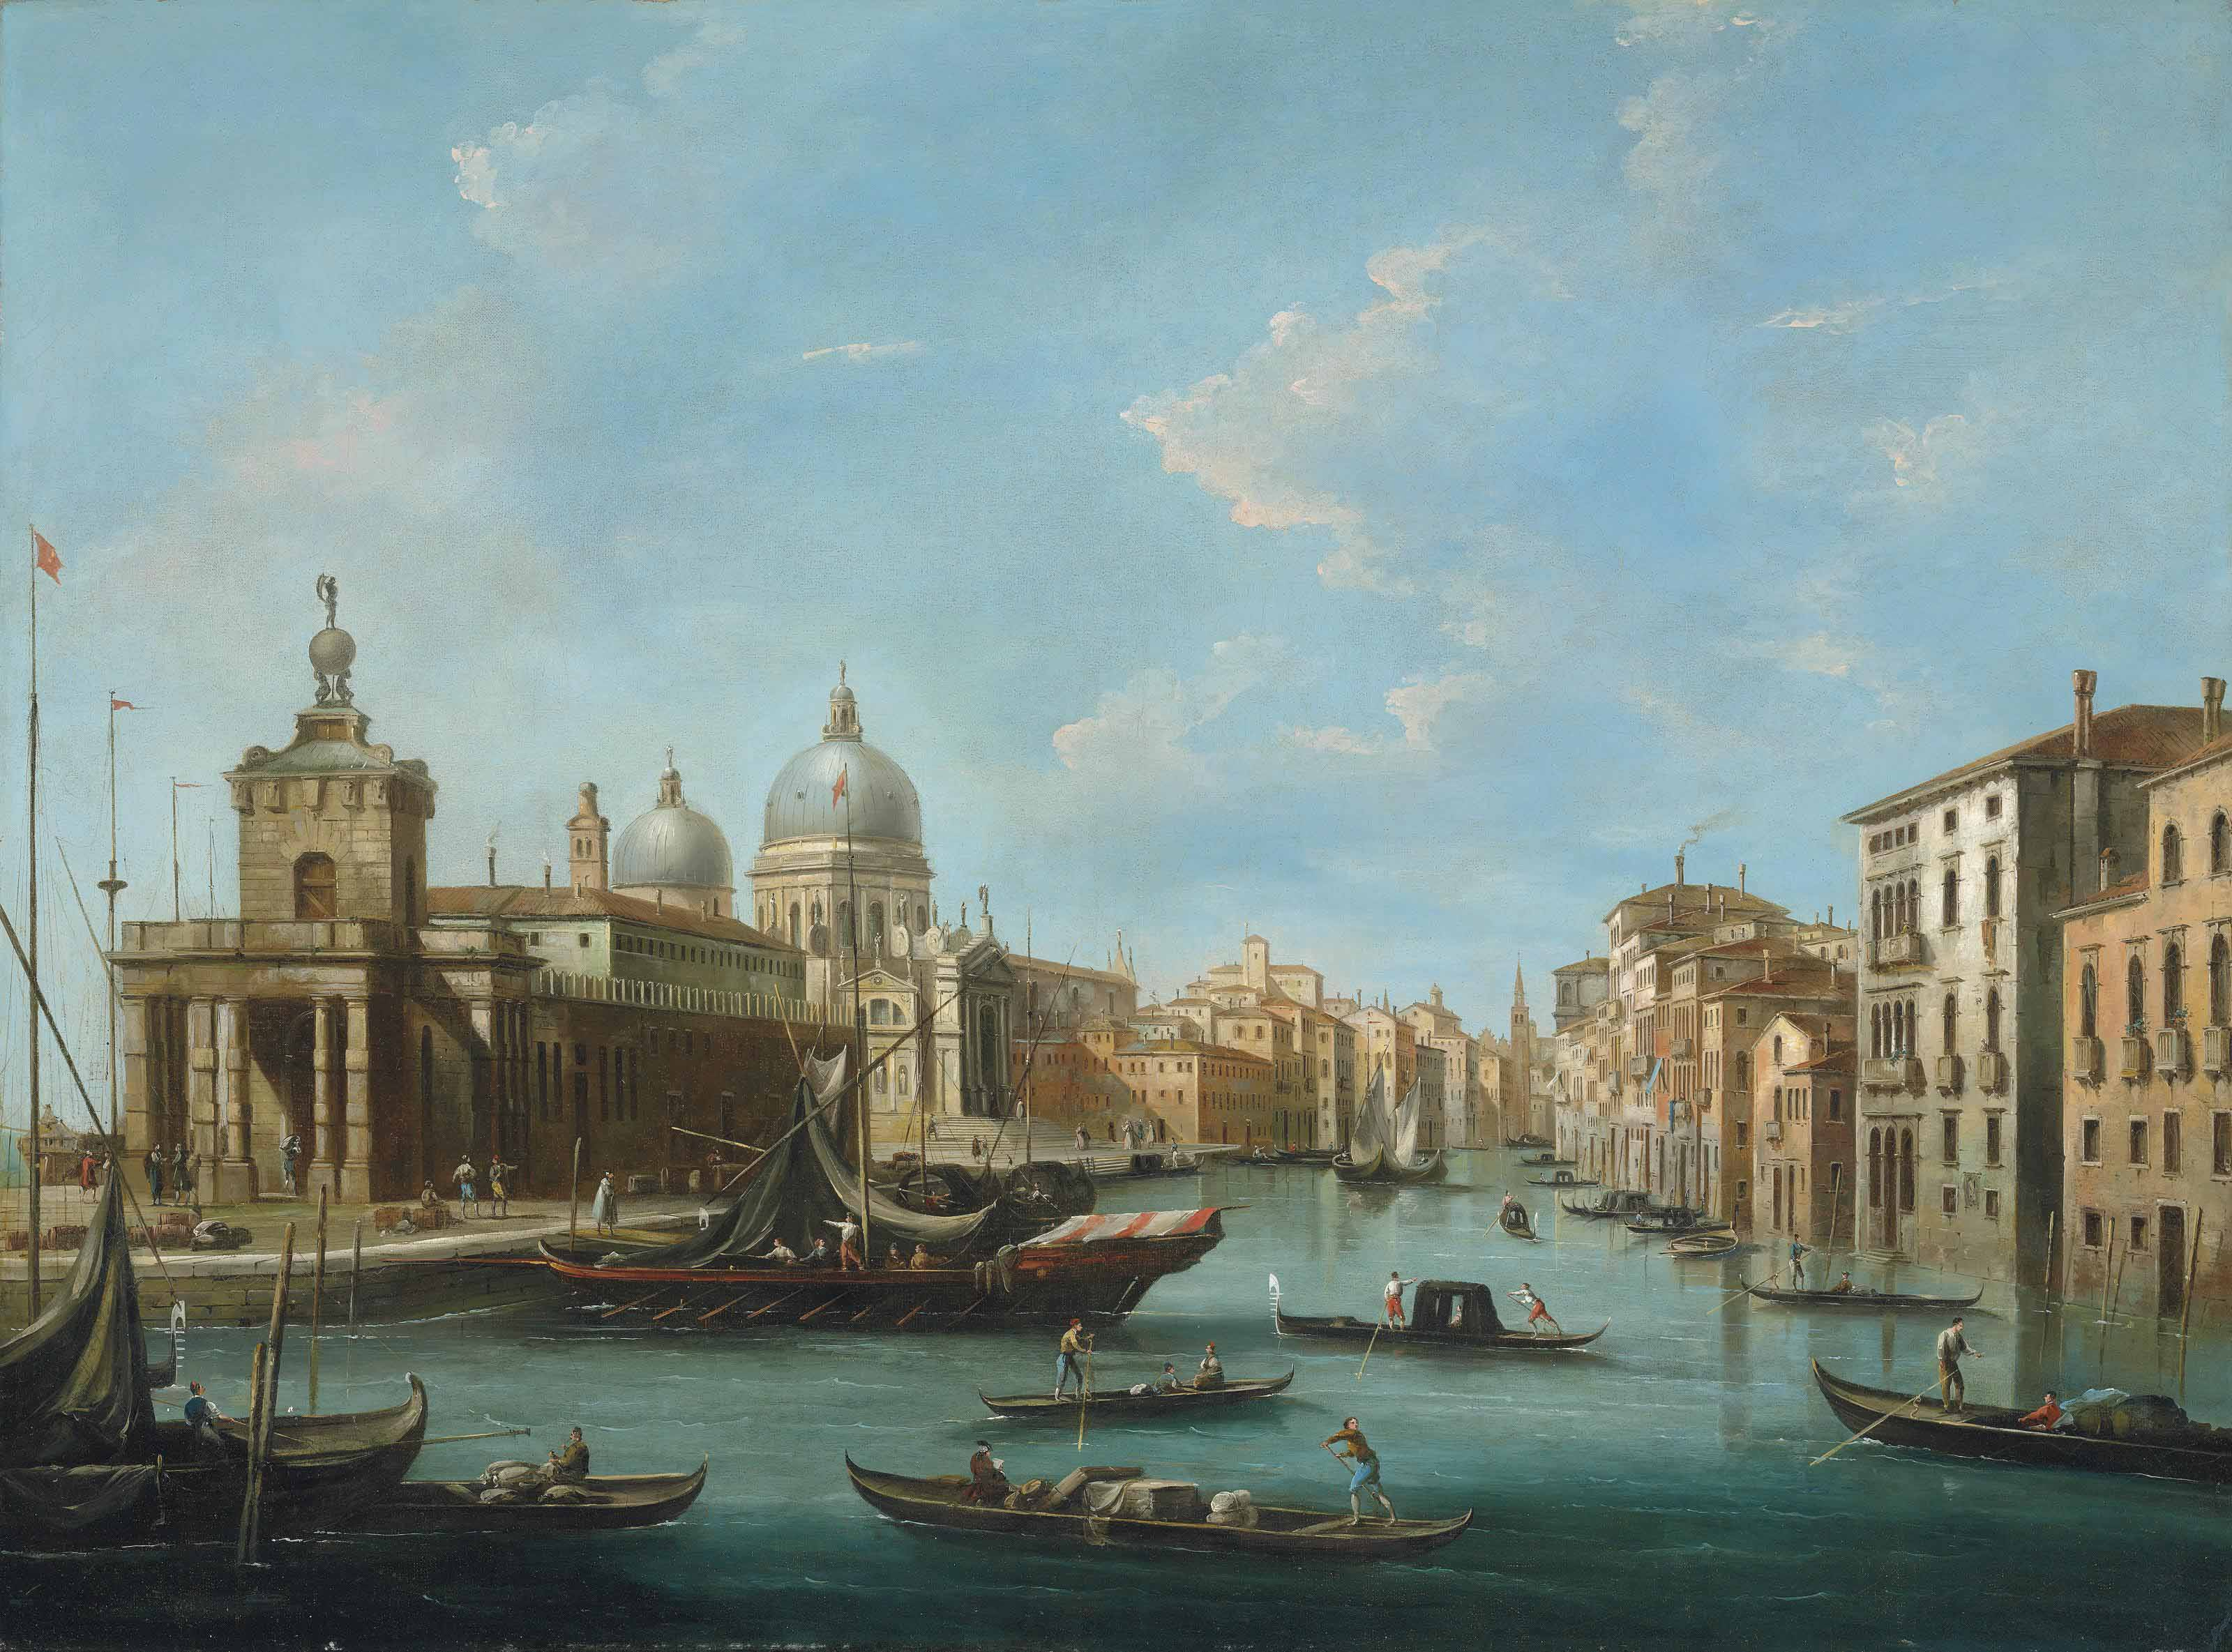 The Grand Canal, Venice, with the Punta della Dogana and Santa Maria della Salute